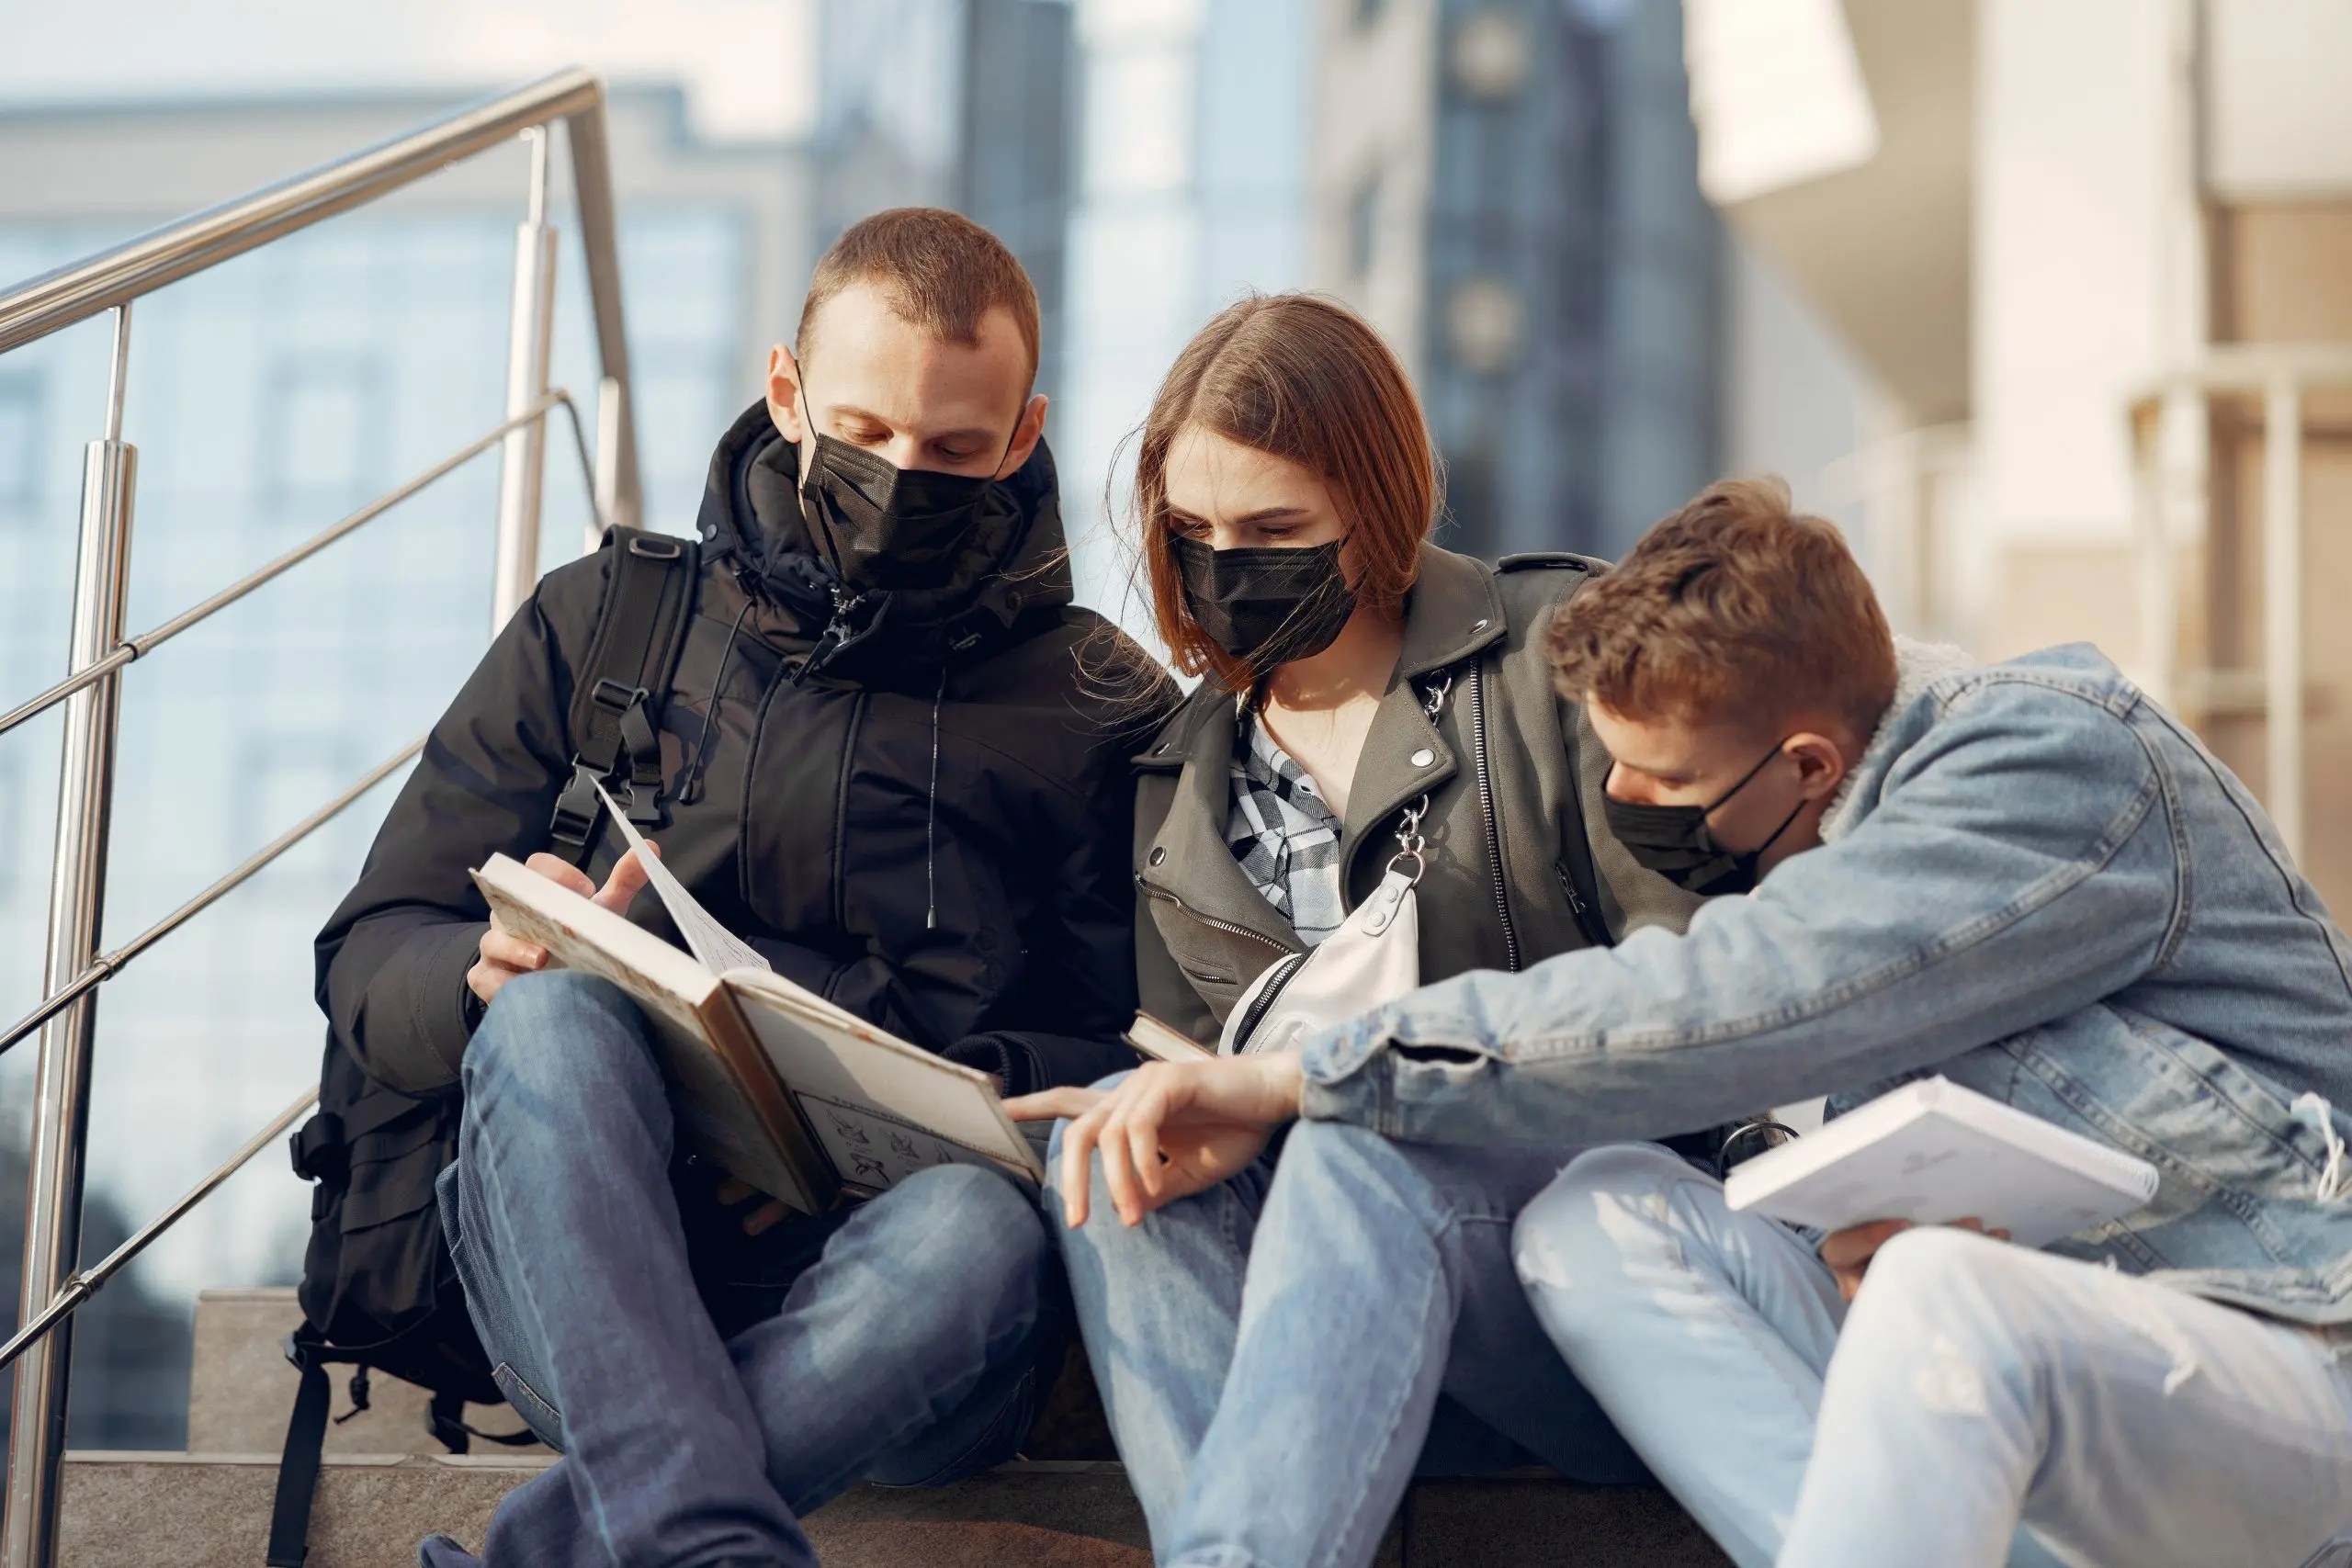 Students in face masks reading books during COVID 19